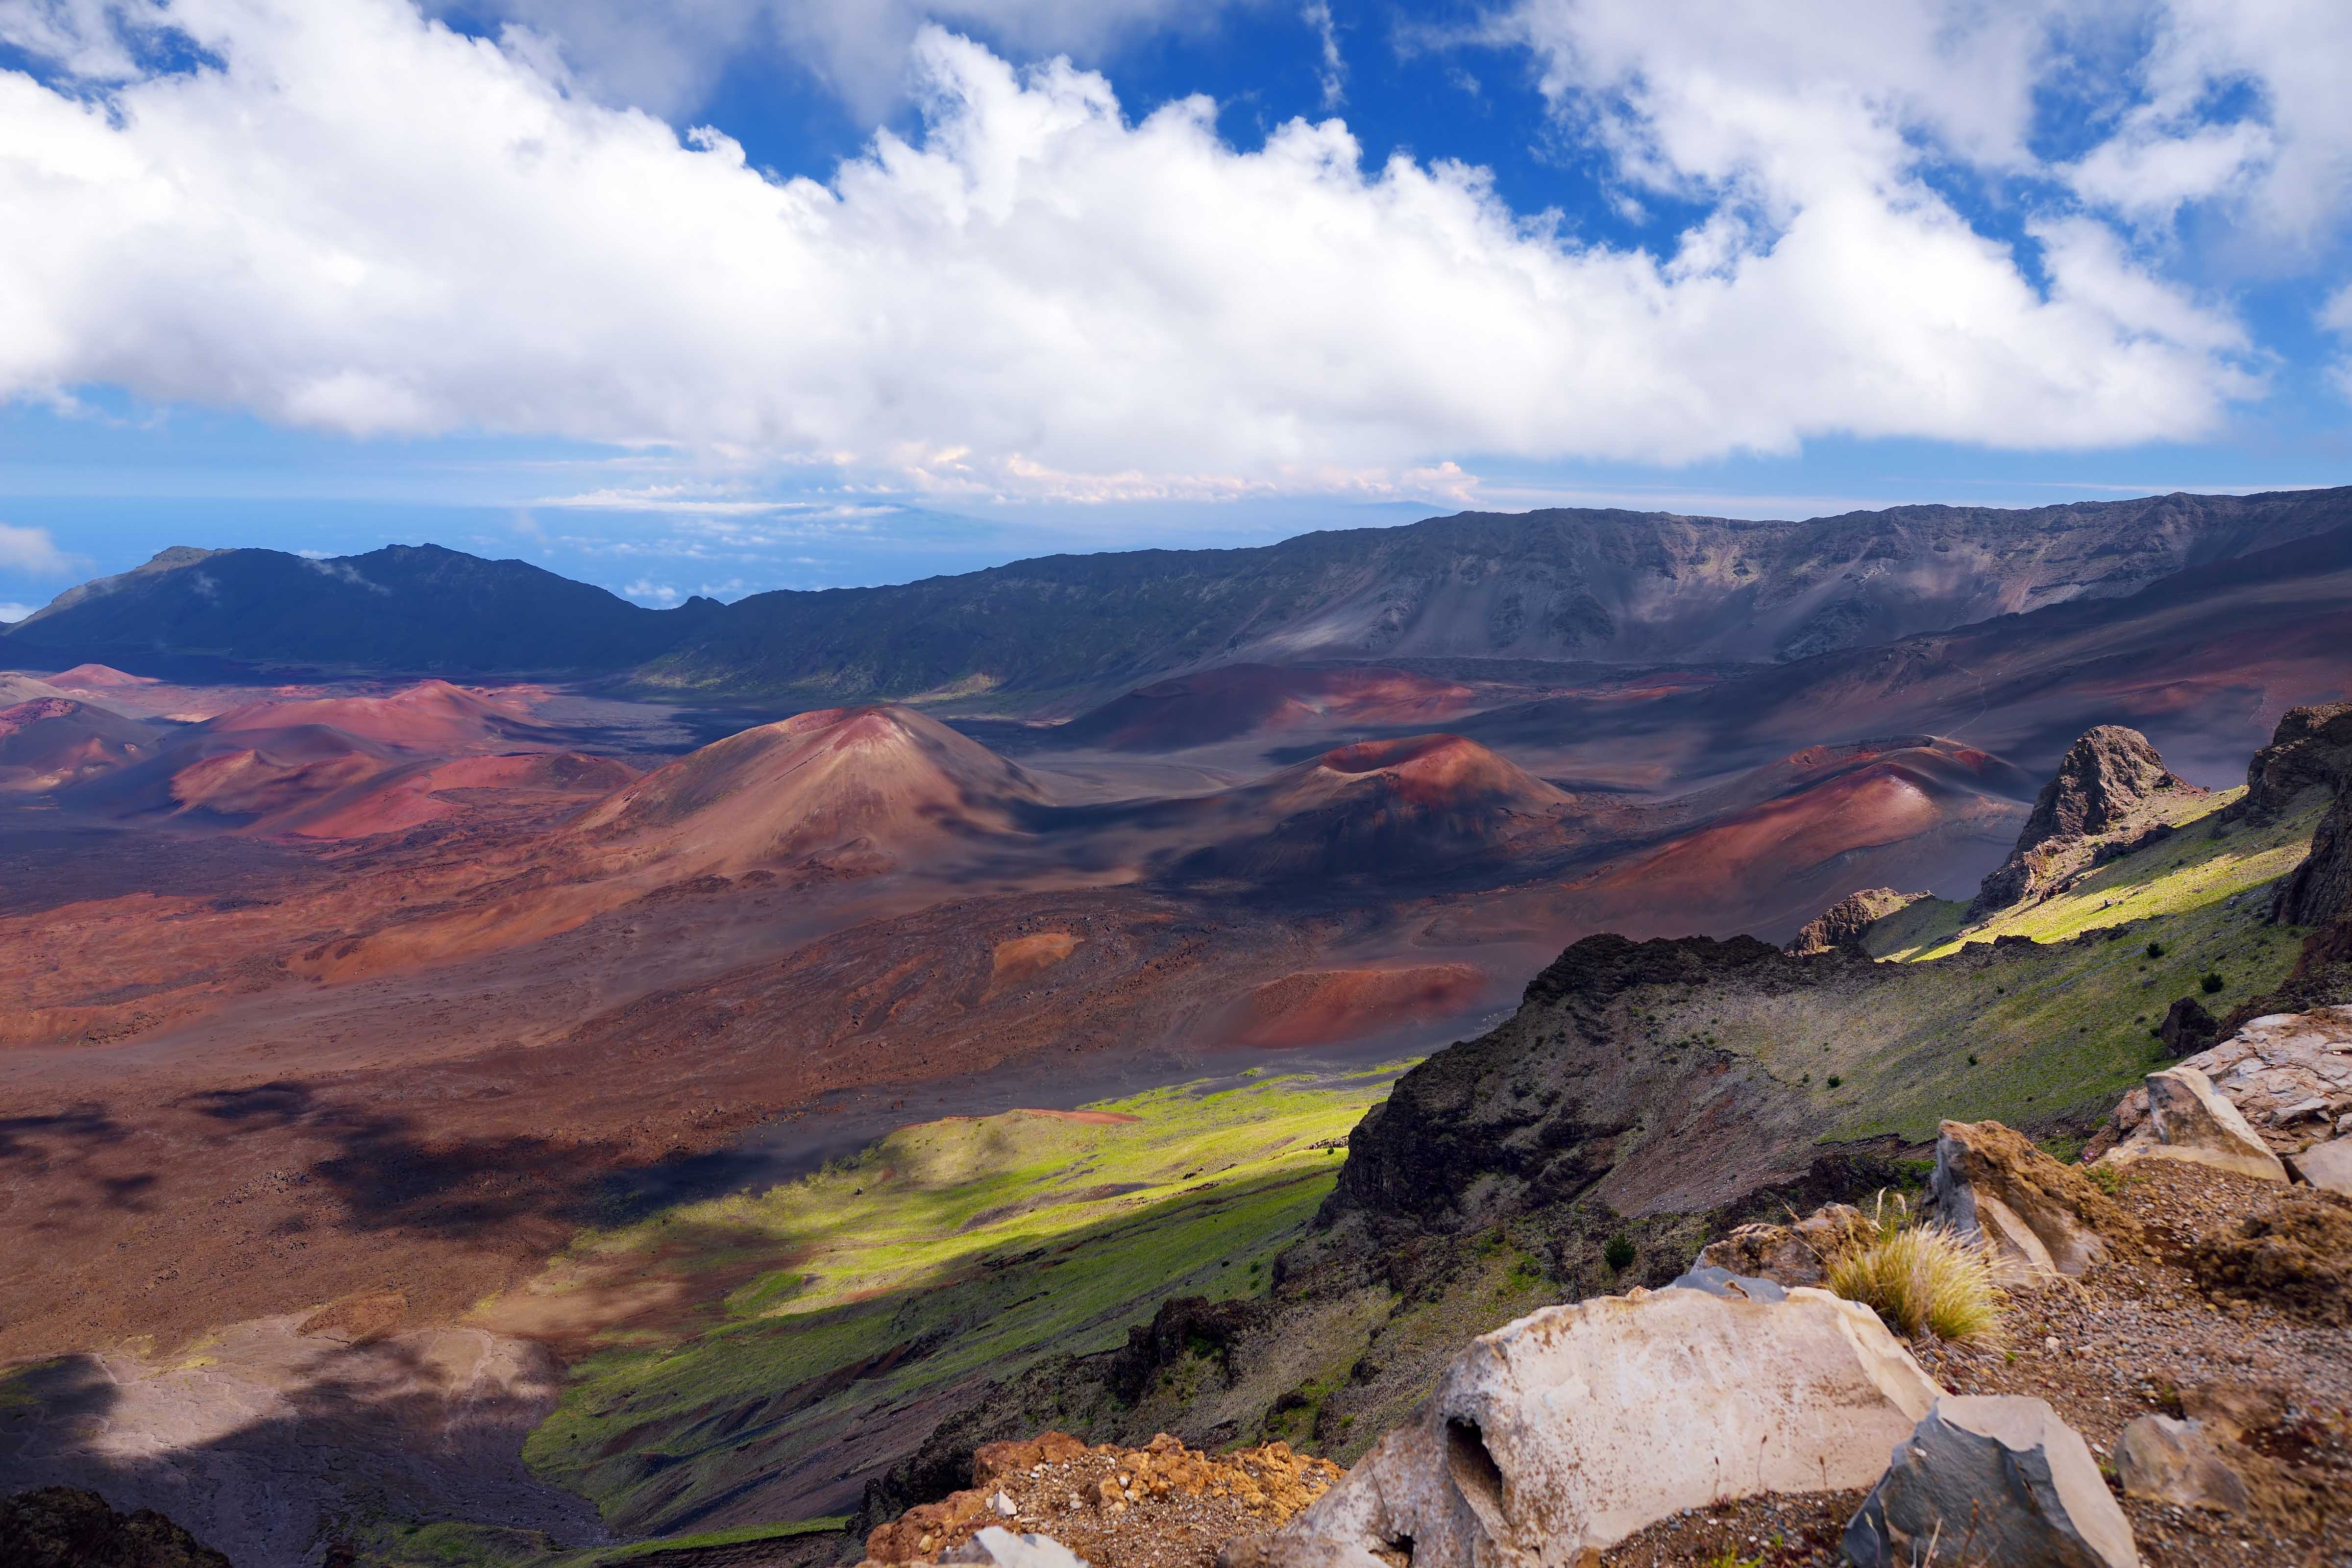 Stunning landscape of Haleakala volcano crater taken at Kalahaku overlook at Haleakala summit. Bird's-eye view of the crater floor and the trails snaking around the cinder cones below. Maui, Hawaii